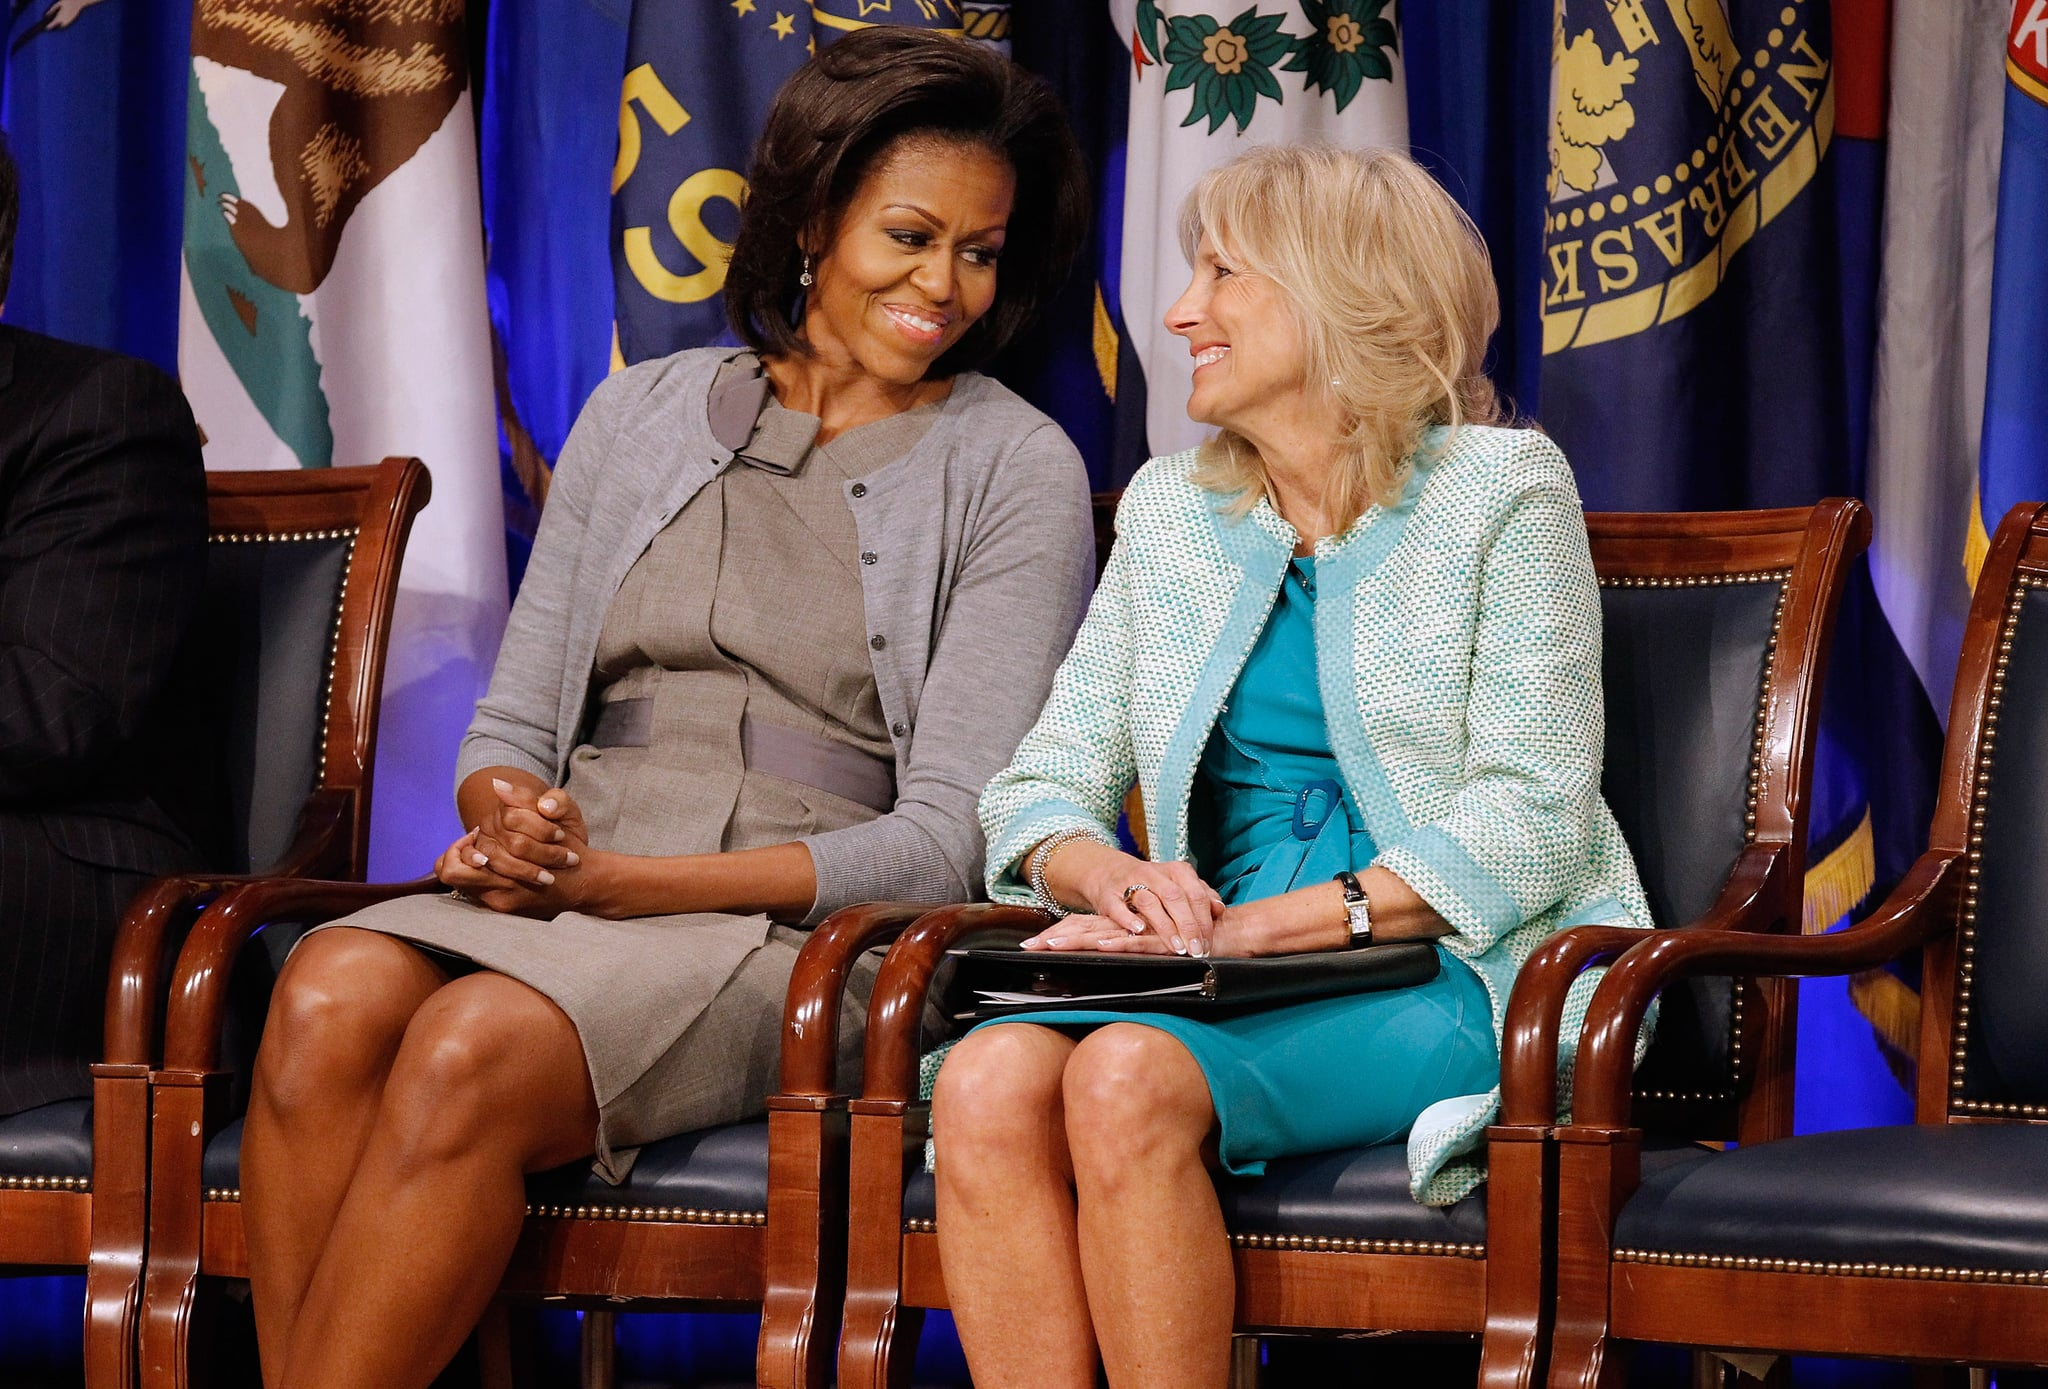 ARLINGTON, VA - FEBRUARY 15:  U.S. first lady Michelle Obama (L) and Dr. Jill Biden attend an event to announce a new report regarding military spouse employment at the Pentagon February 15, 2012 in Arlington, Virginia. The report,